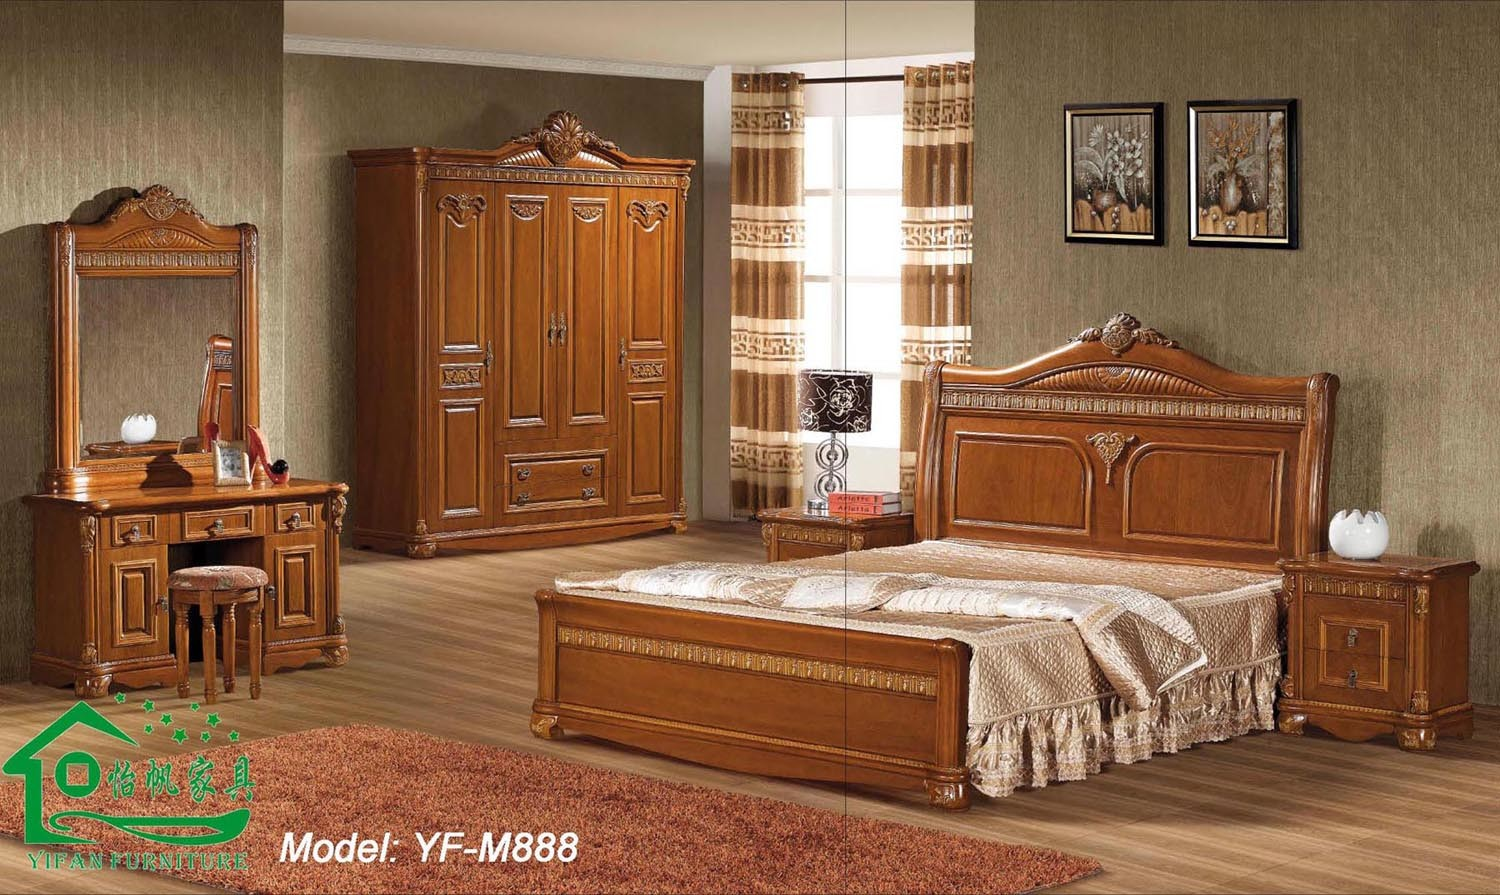 China wooden bed for home furniture and adult bed yf m888 photos pictures made in - Wood farnichar ...